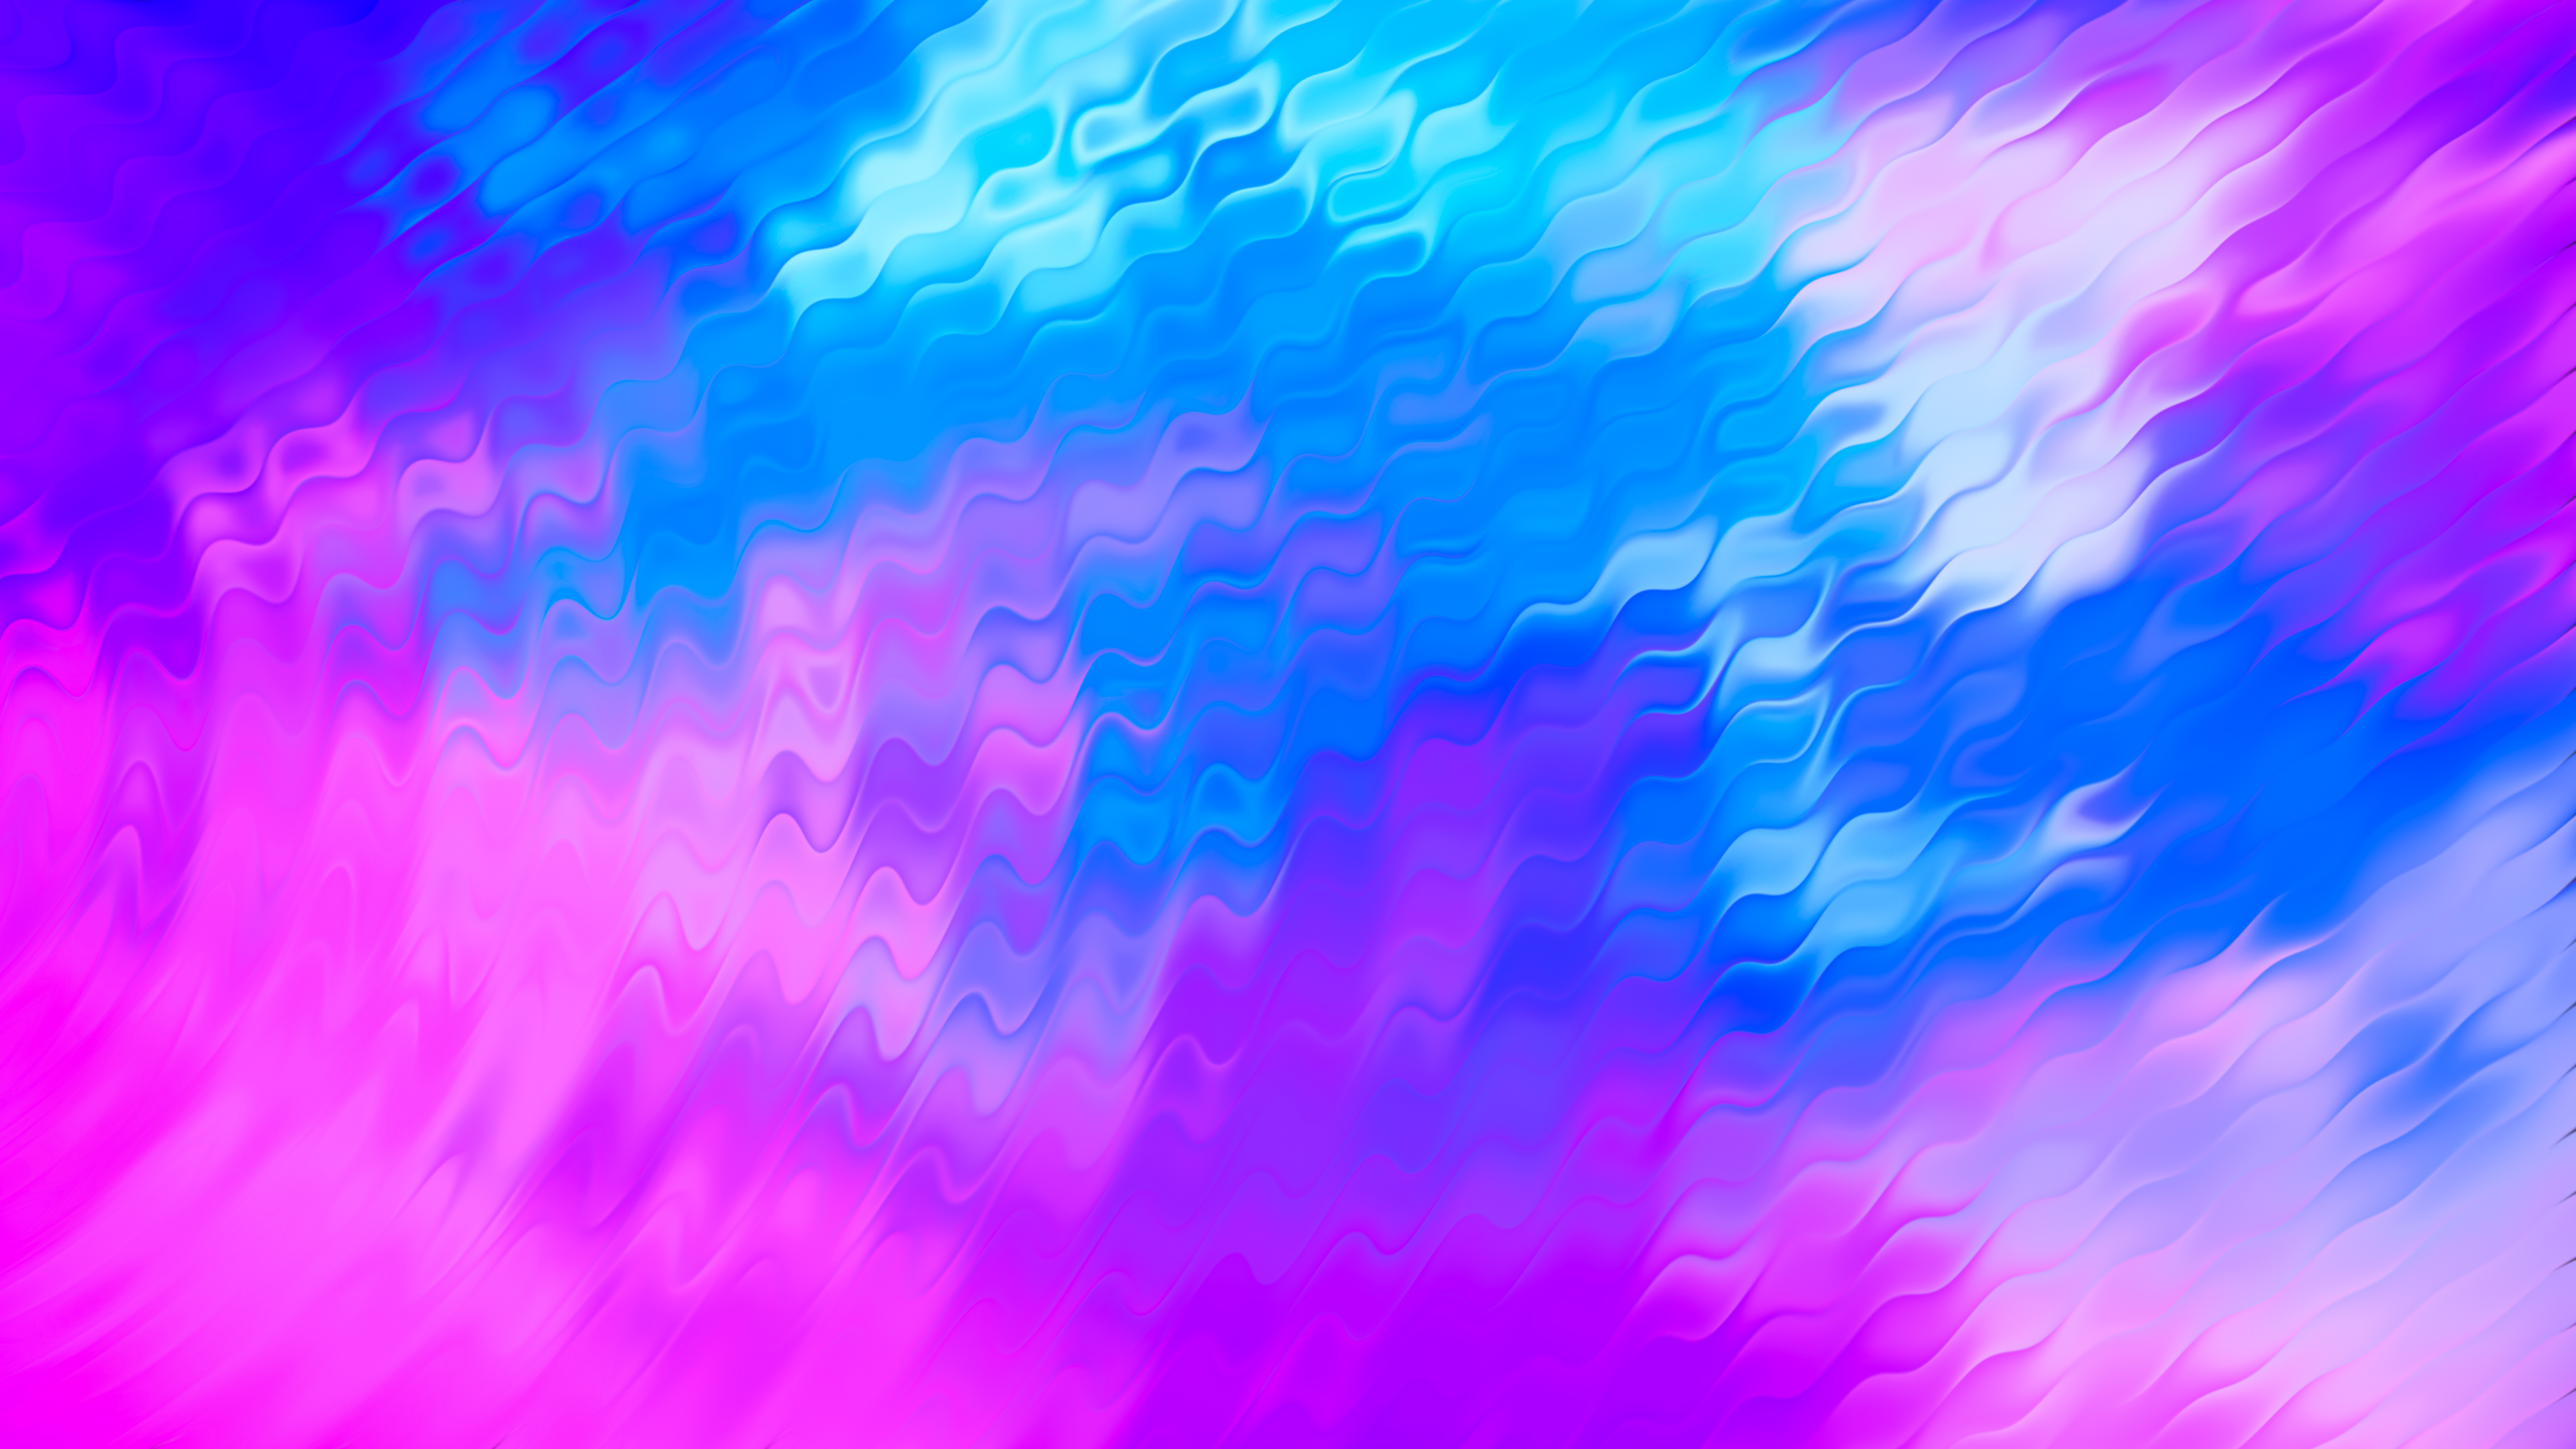 1920x1080 Pink Blue Shapes Abstract 4k Laptop Full HD ...